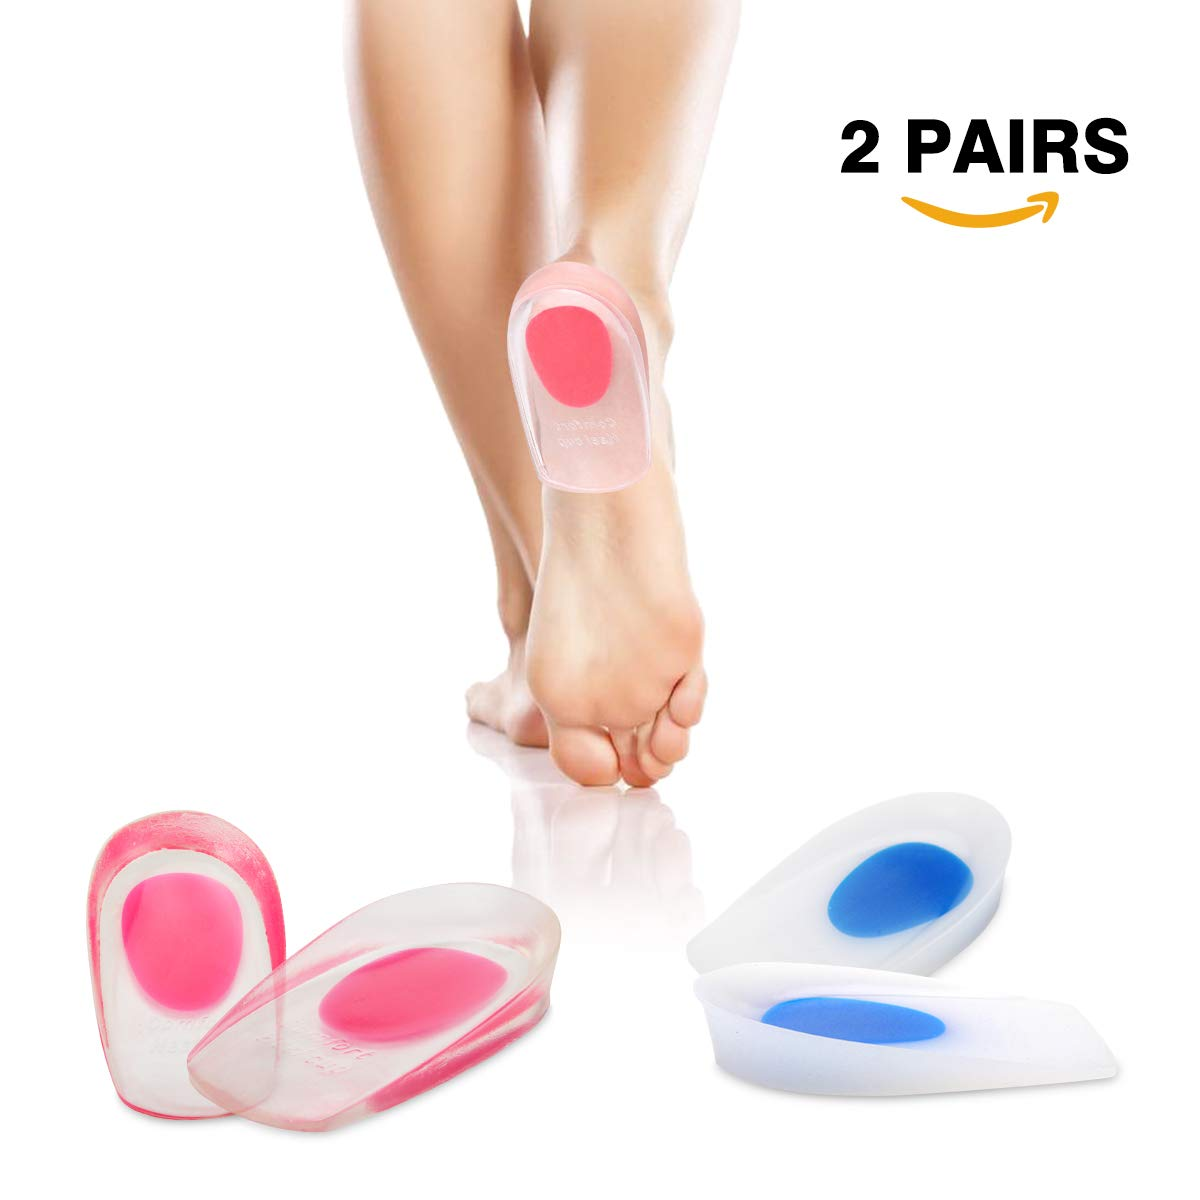 HLYOON H11 Silicone+PU GEL Heel Cups - for Heel Spur, Plantar Fasciitis and Heel Pain Relieve, - 2 Pairs